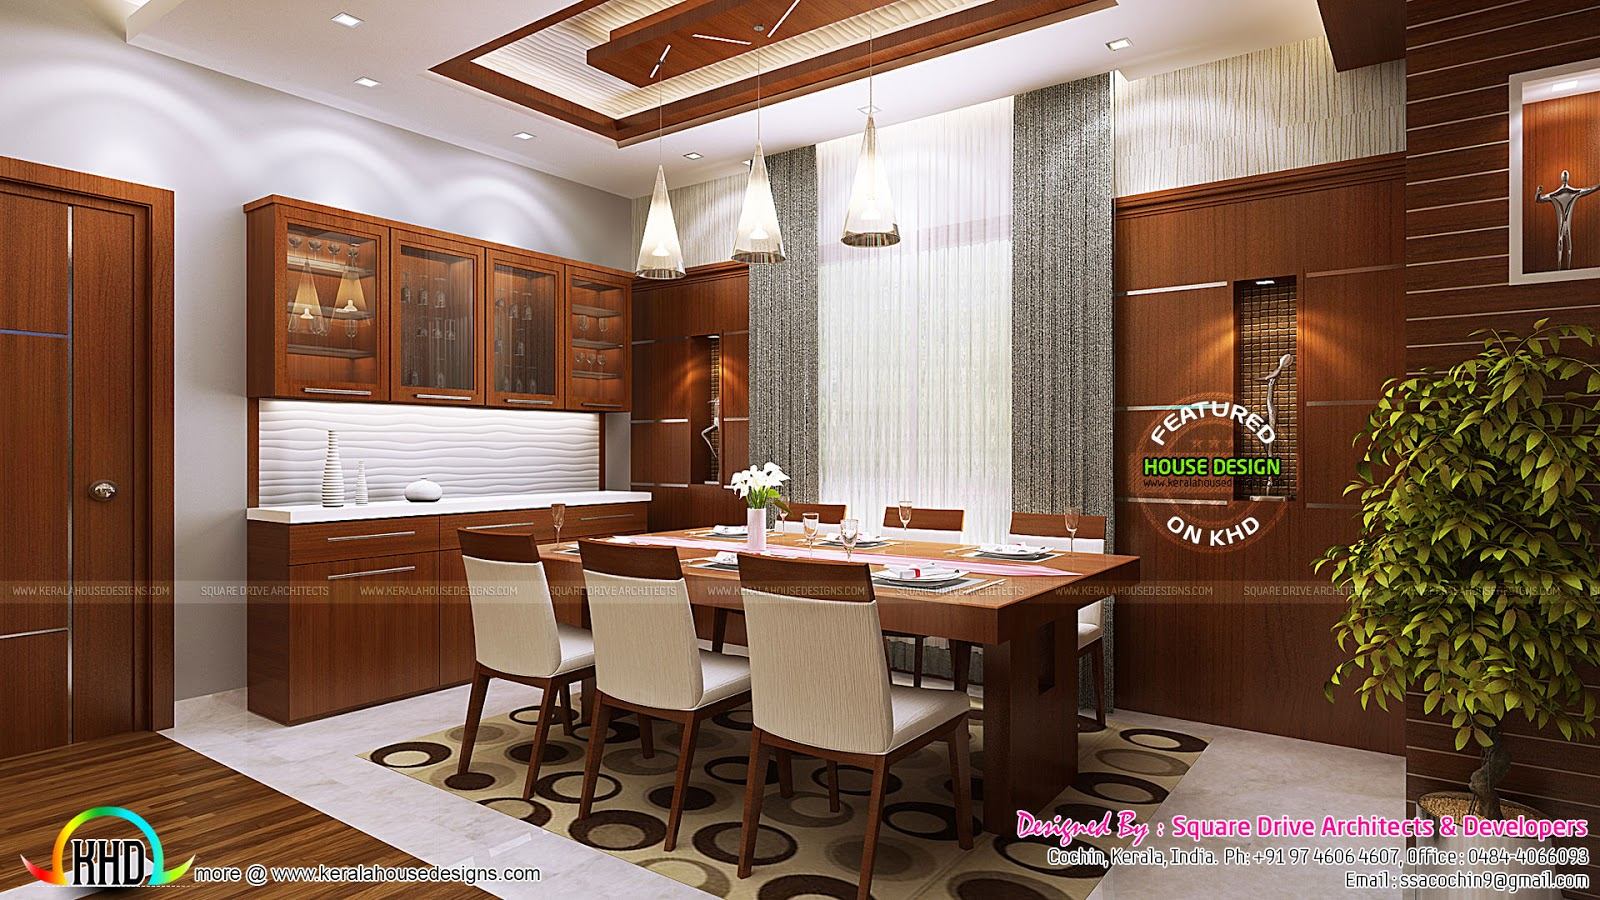 Kitchen and dining room interior ideas kerala home for Dining room ideas in kerala